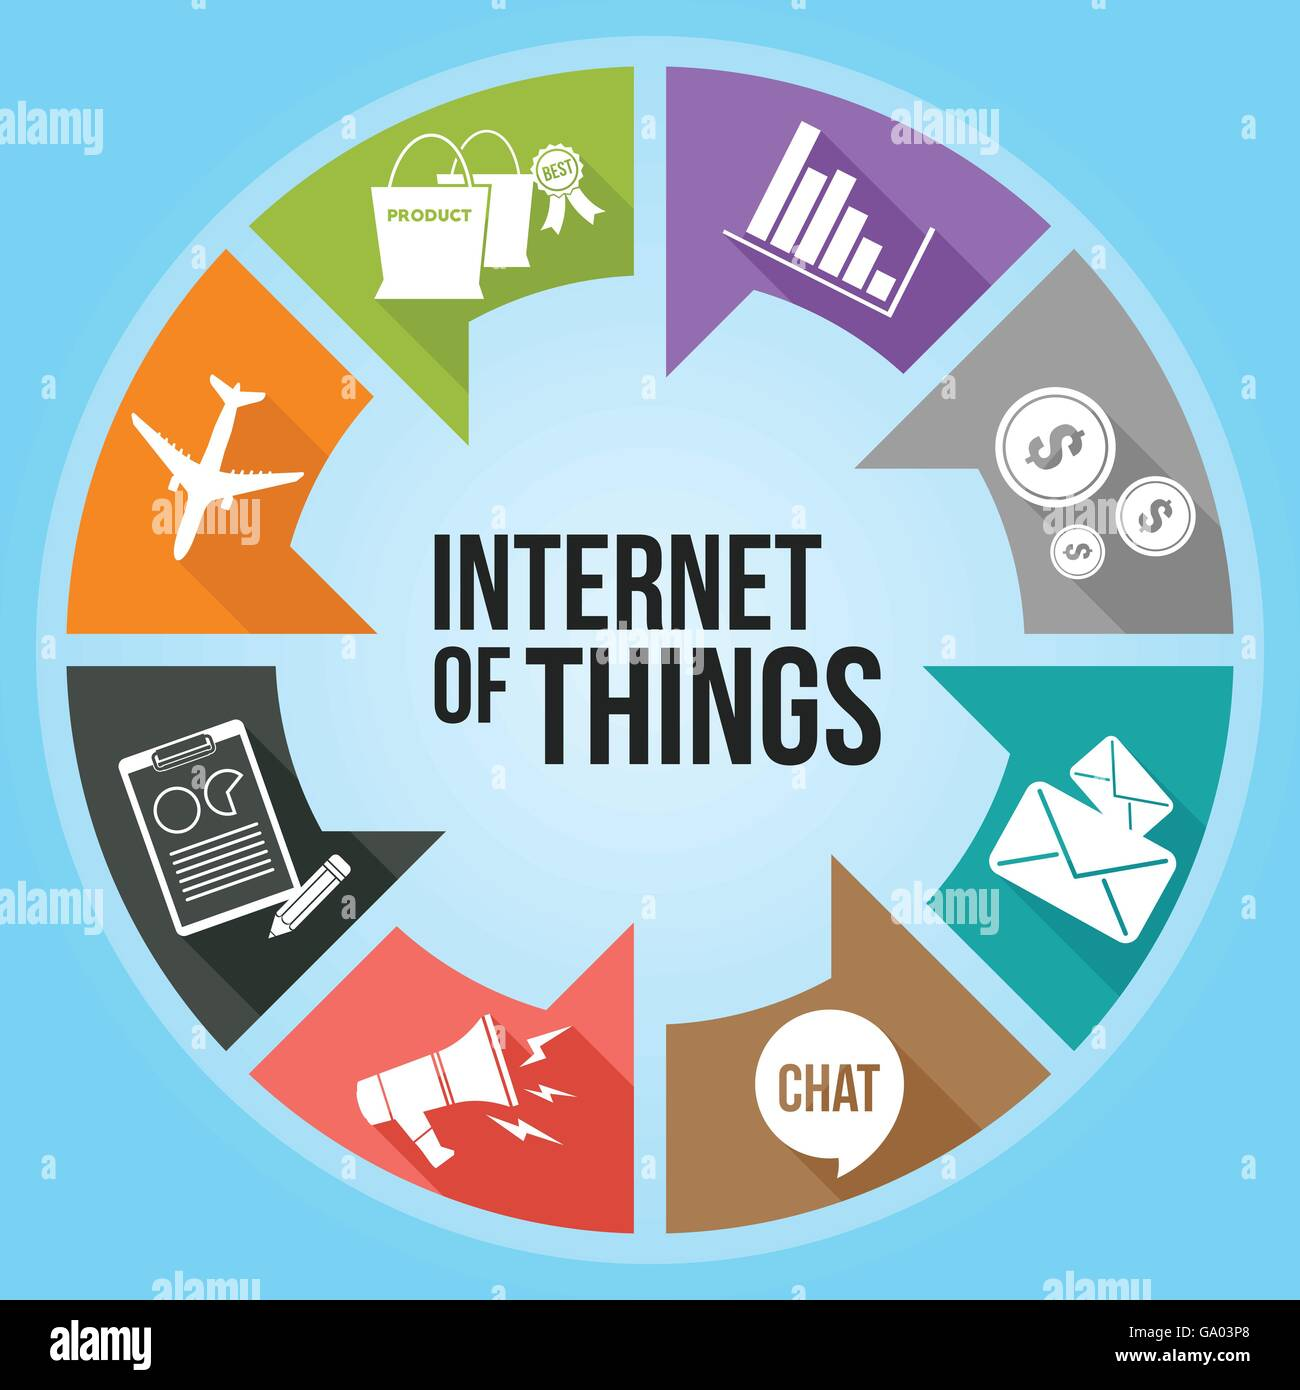 Internet of Things with colorful infographic - Stock Image